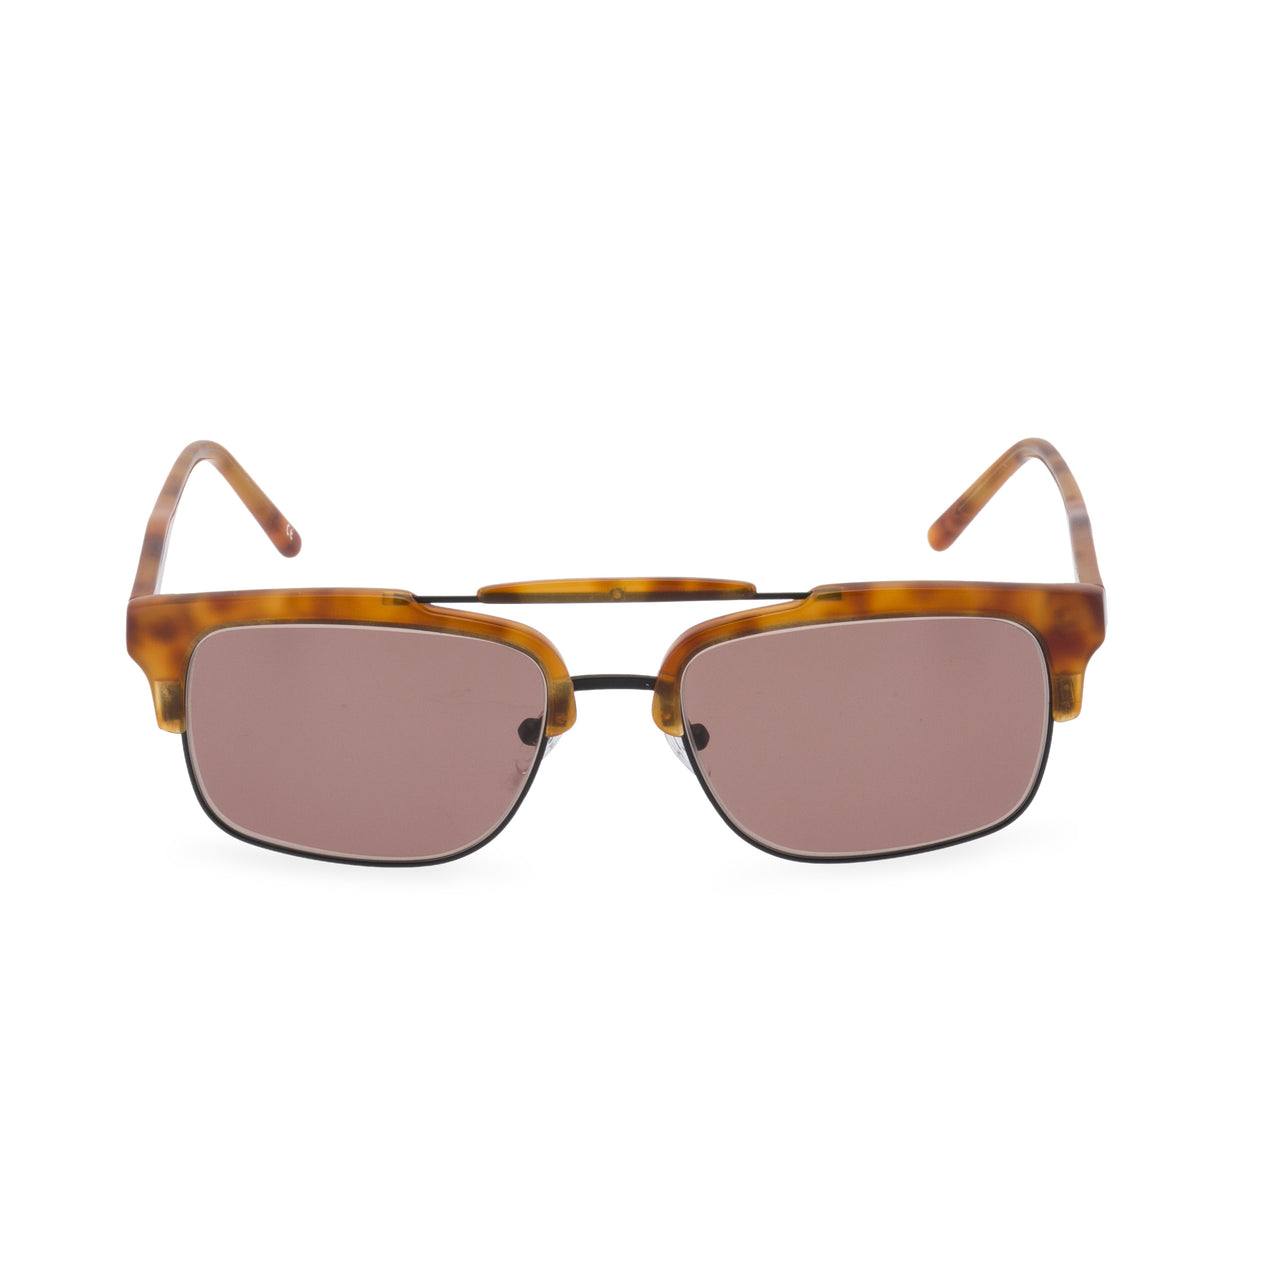 Hedley - Sunglasses Vintage Amber / Brown Lens